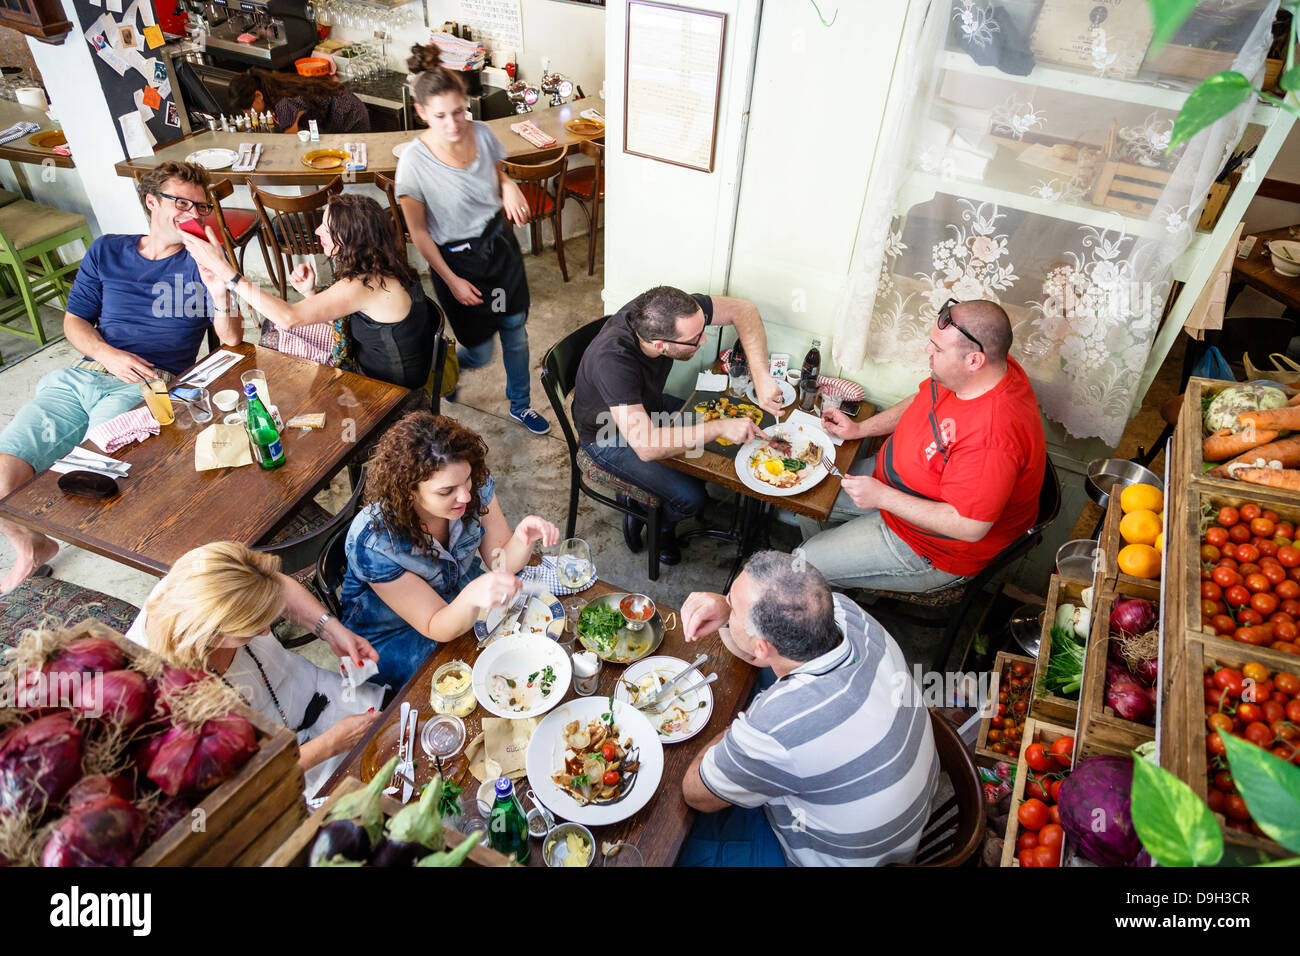 Restaurant Machneyuda, Jérusalem, Israël. Photo Stock